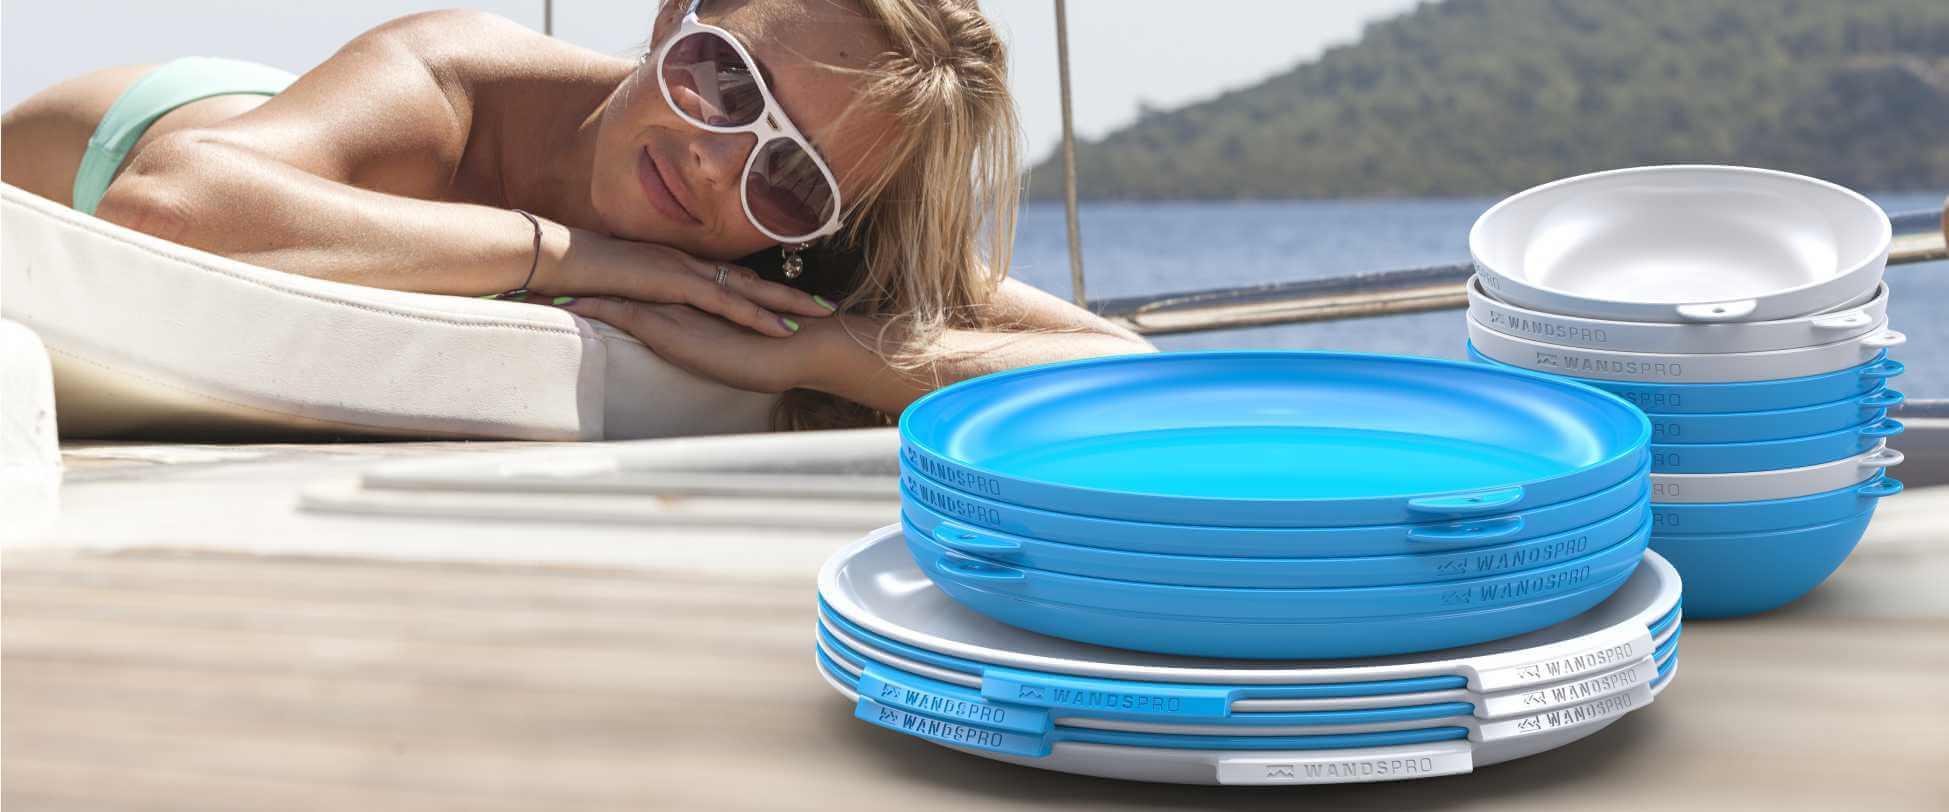 Wandspro ClipCroc stacks easily on any boat and is rattle free